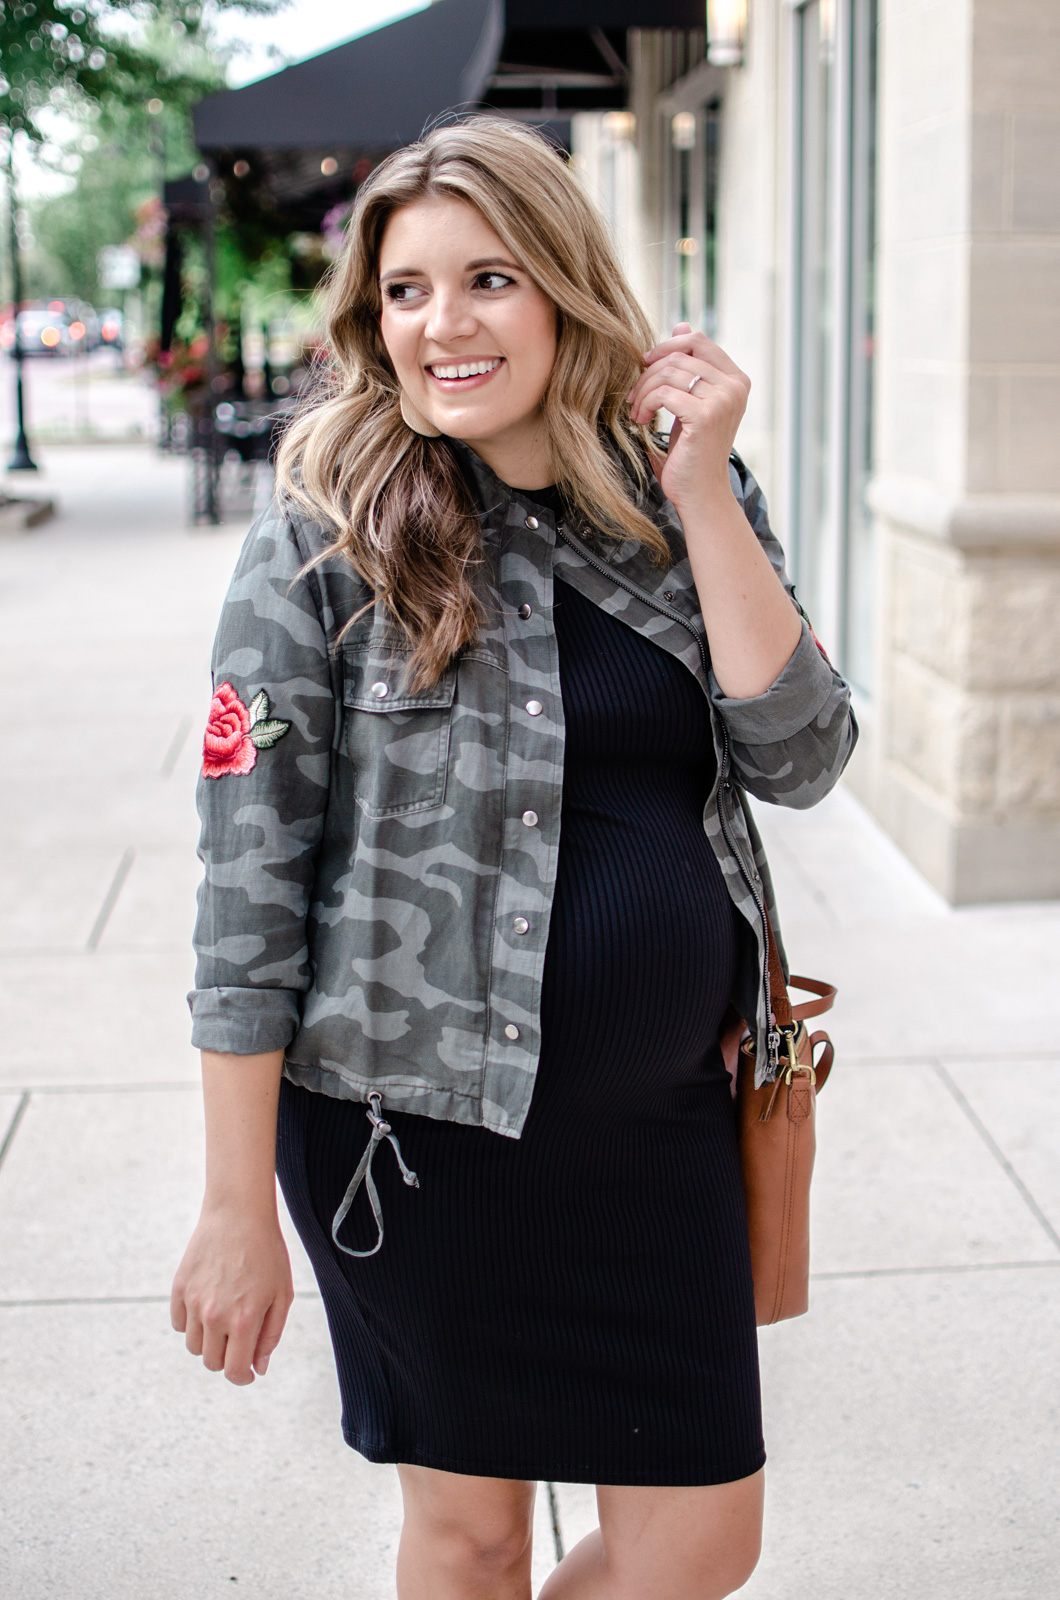 cute fall pregnancy outfit casual - nordstrom anniversary sale outifts | bylaurenm.com